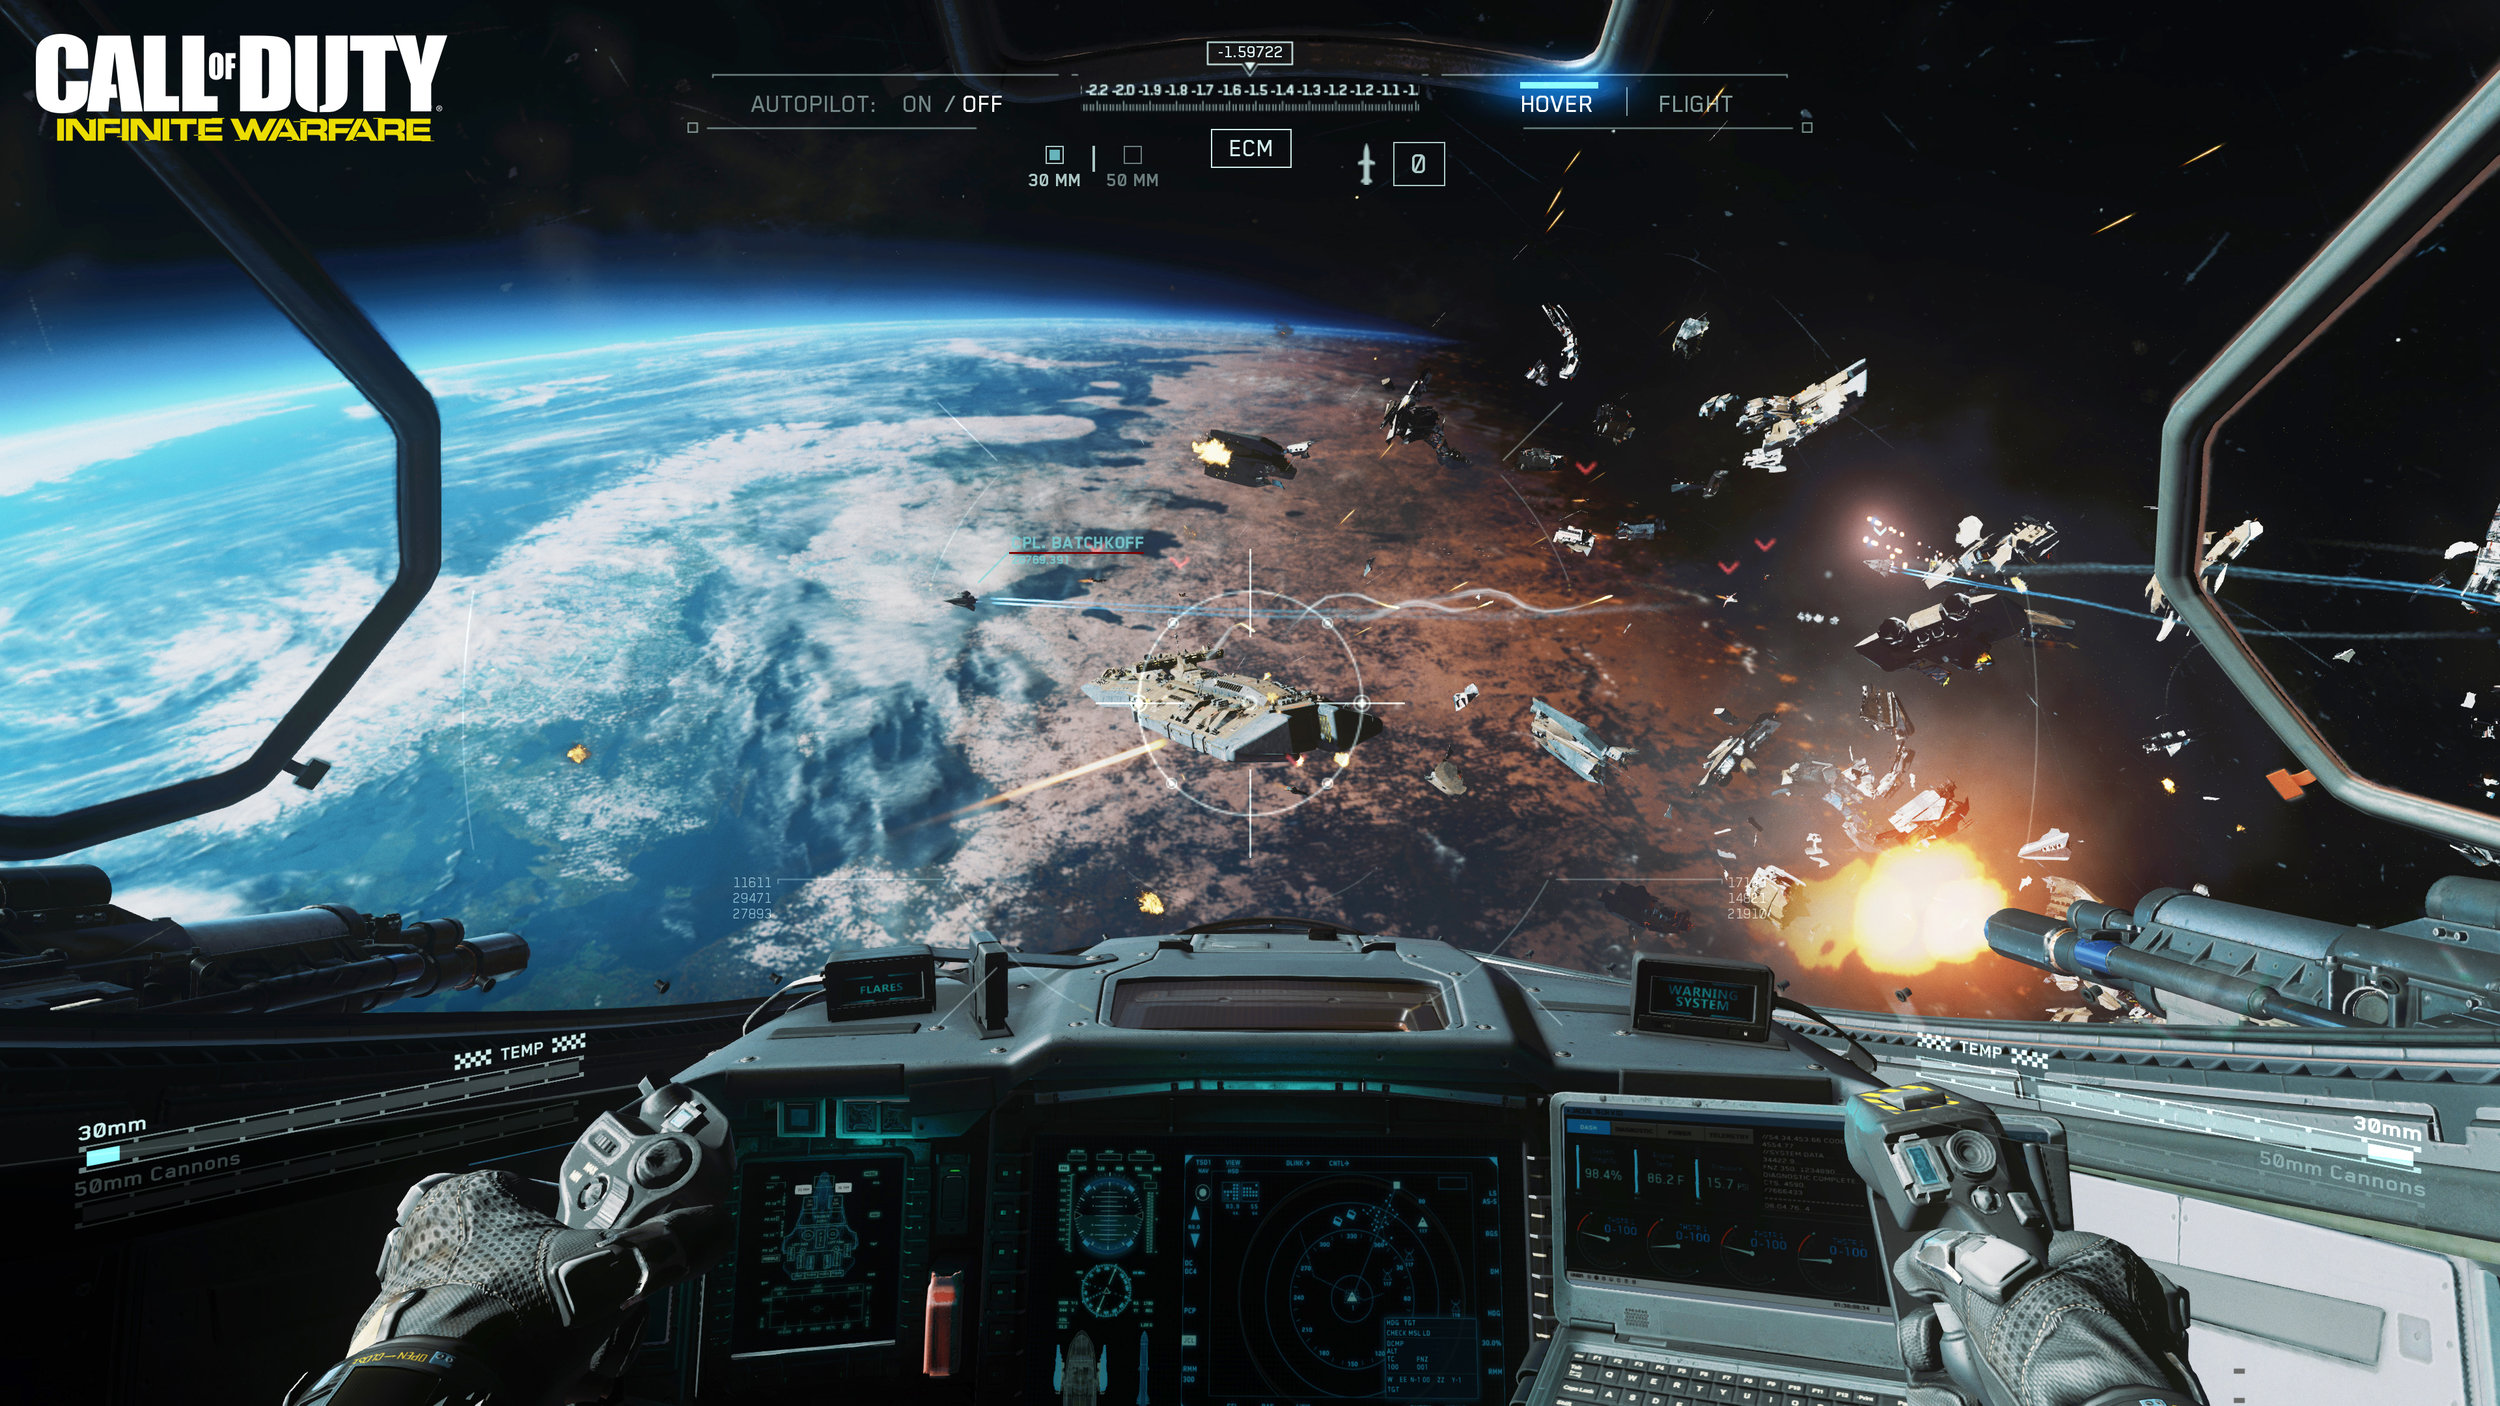 Decades from now, space war will still be waged by clicking right to aim and clicking left to shoot.